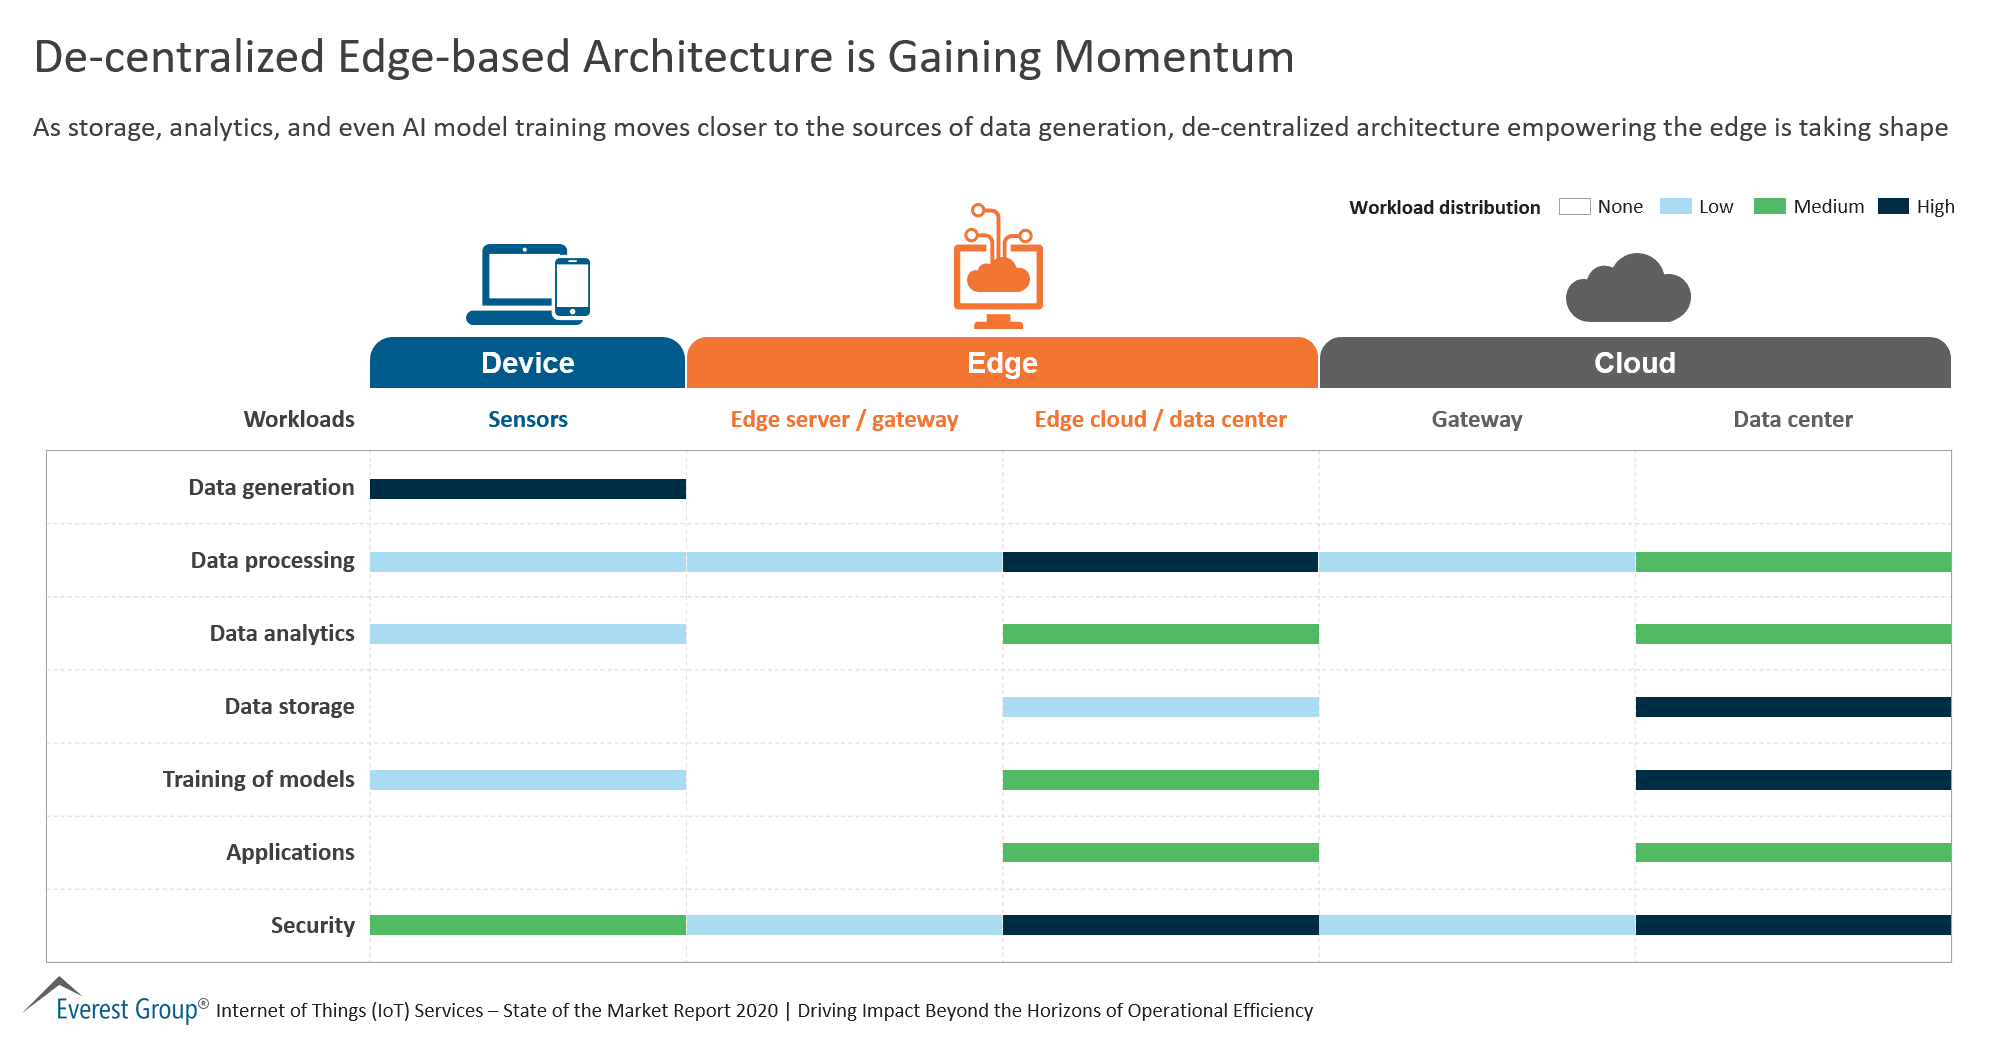 De-centralized Edge-based Architecture is Gaining Momentum